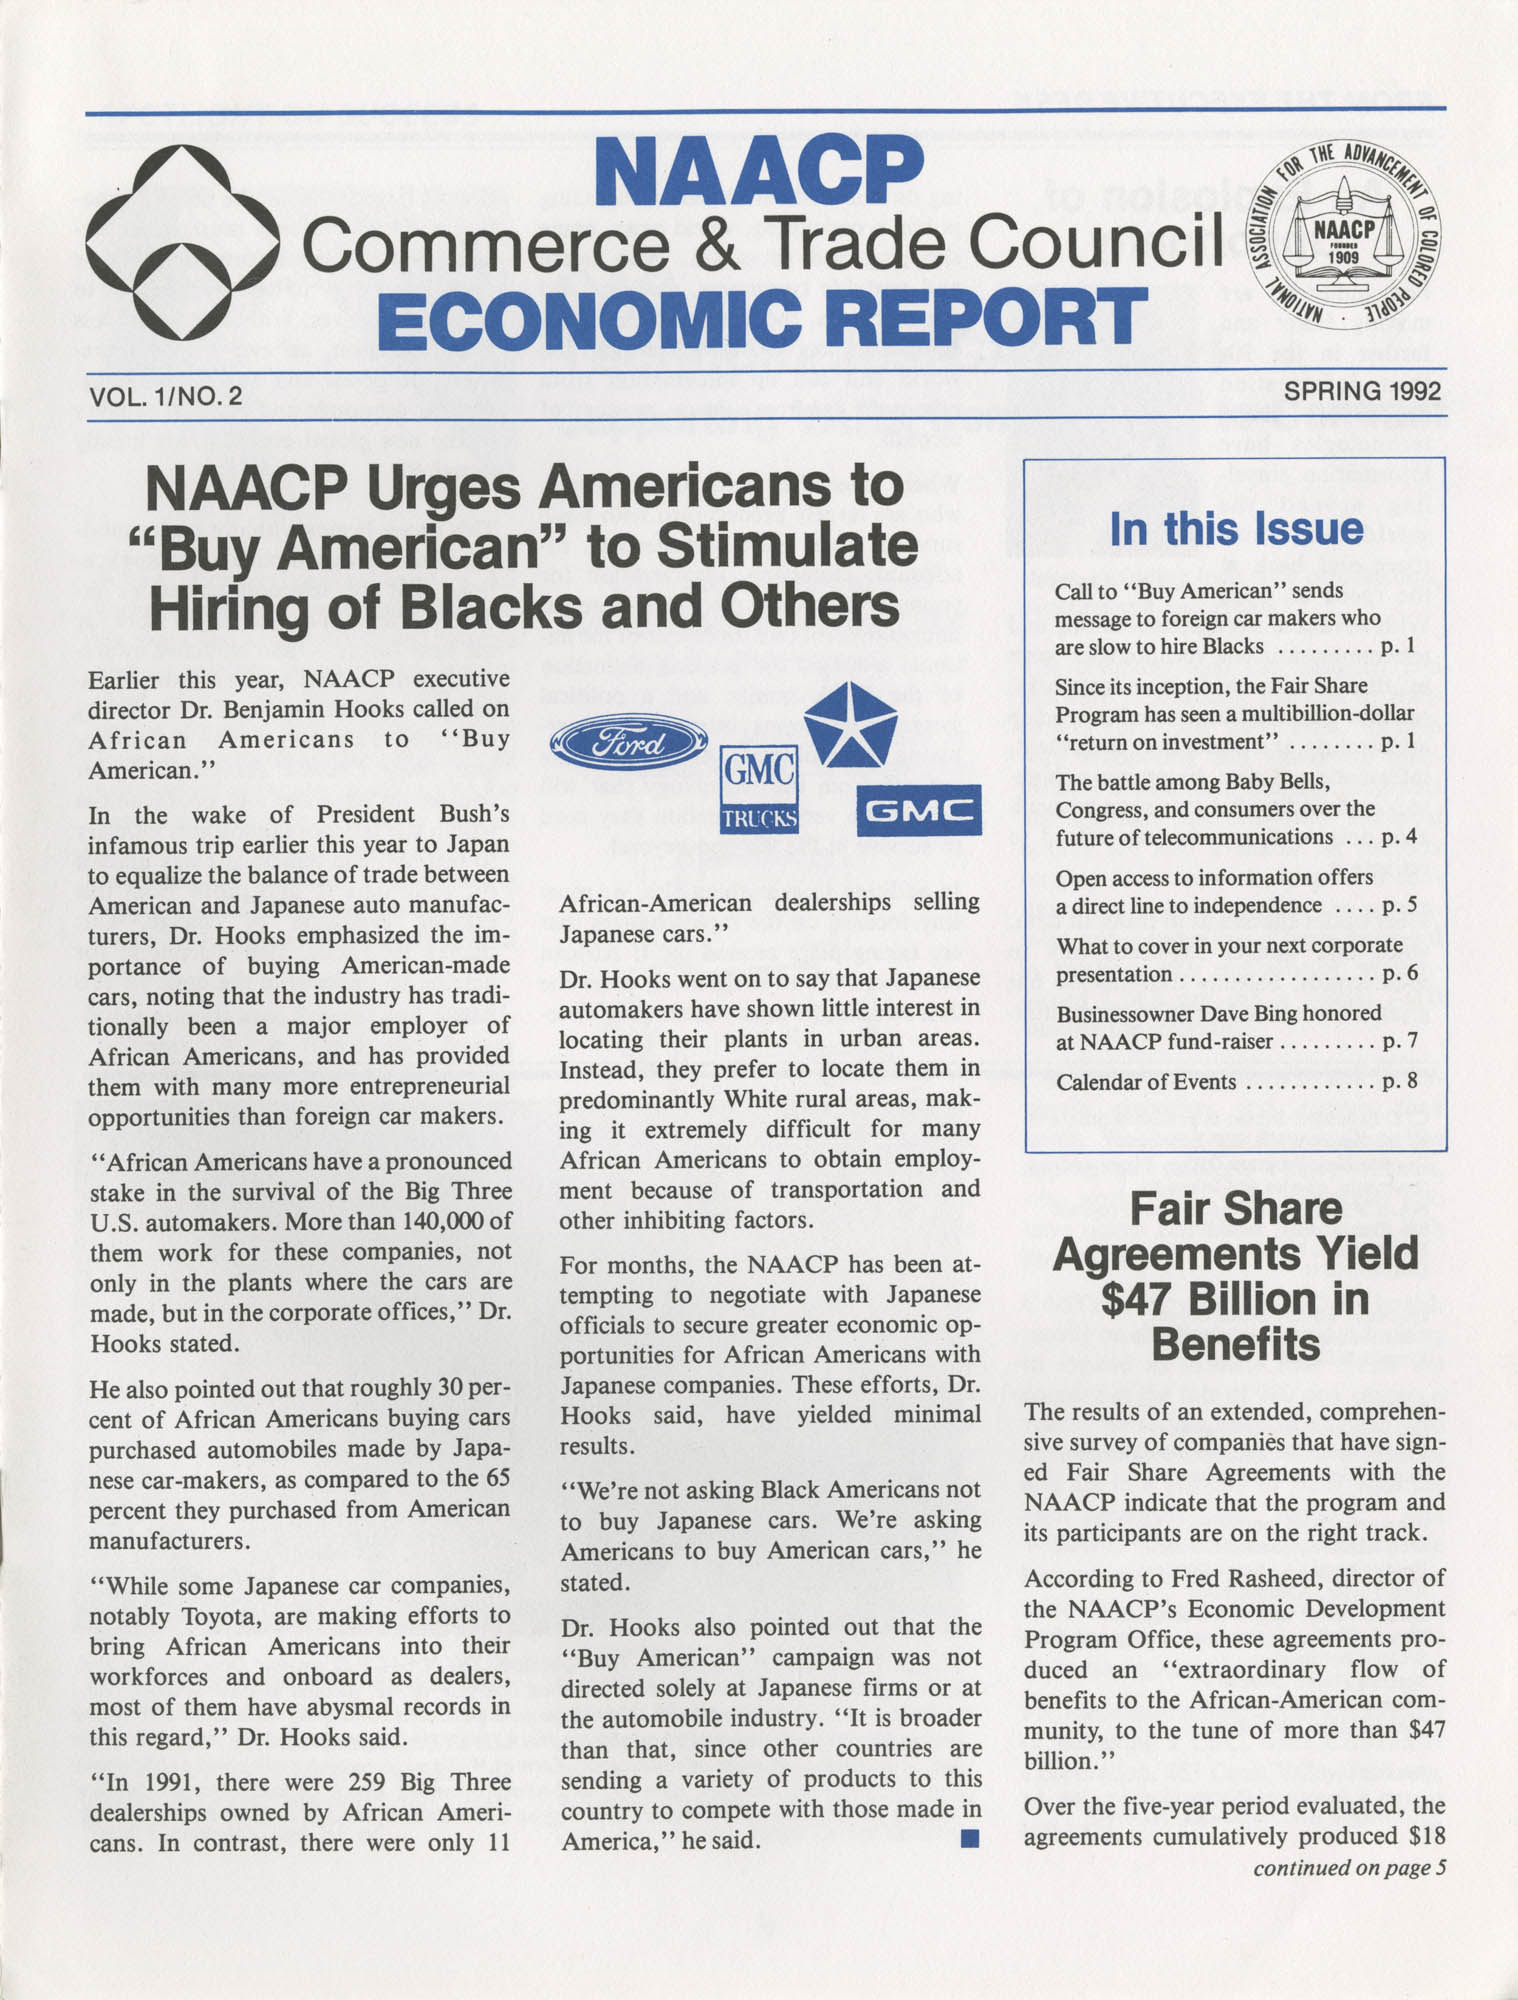 NAACP Commerce and Trade Council Economic Report, Vol. 1, No. 2, Spring 1992